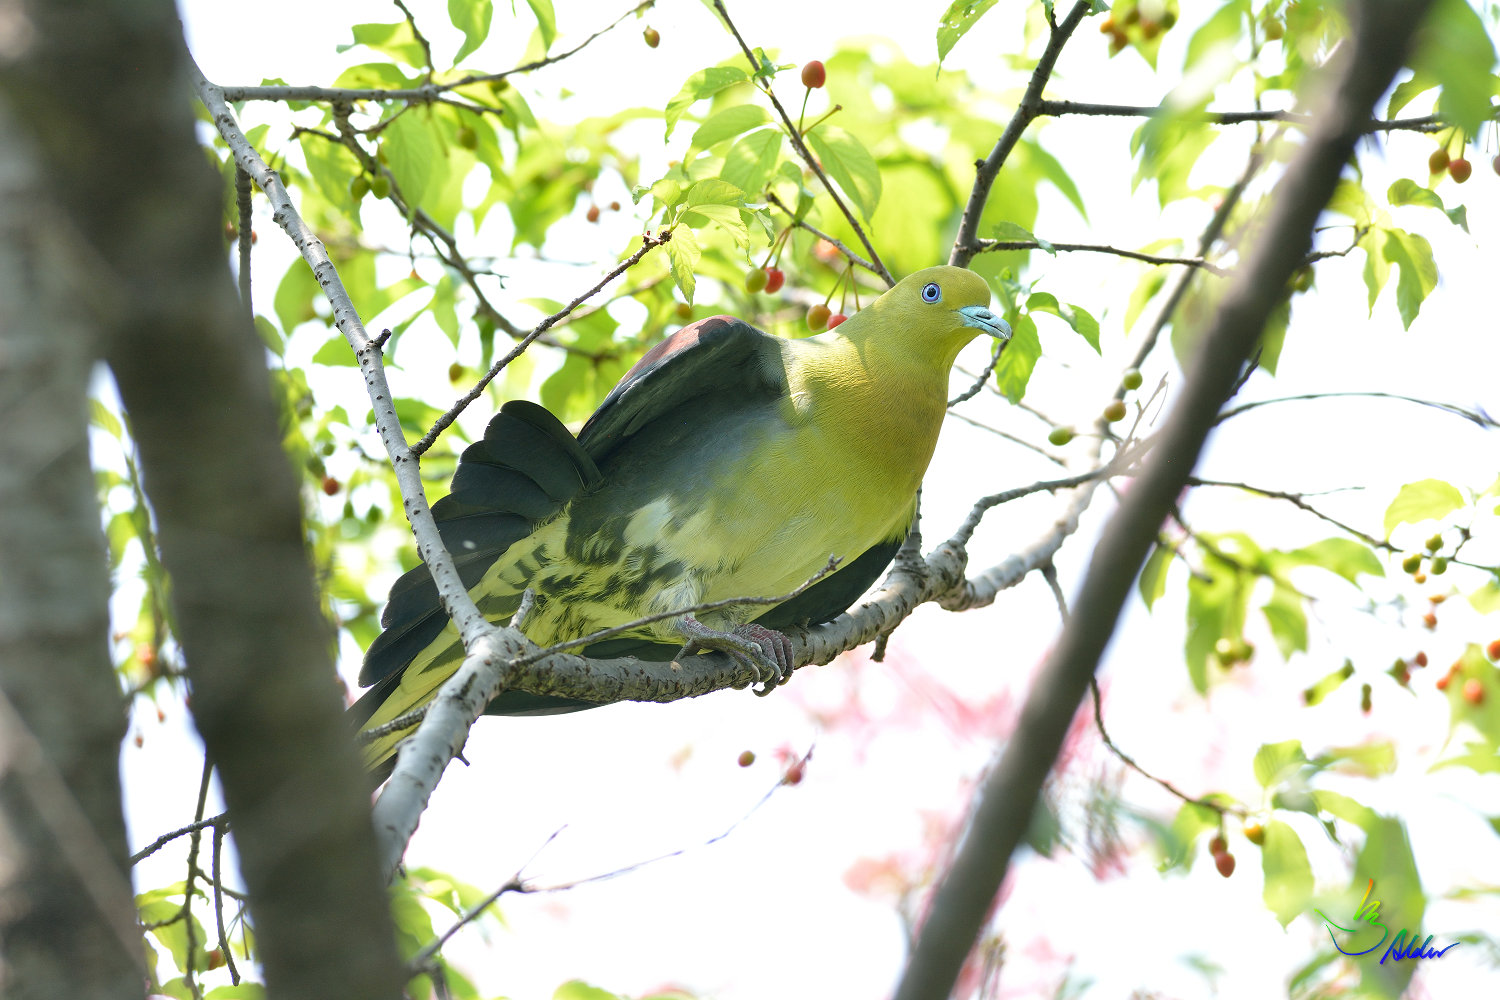 White-bellied_Green_Pigeon_5722